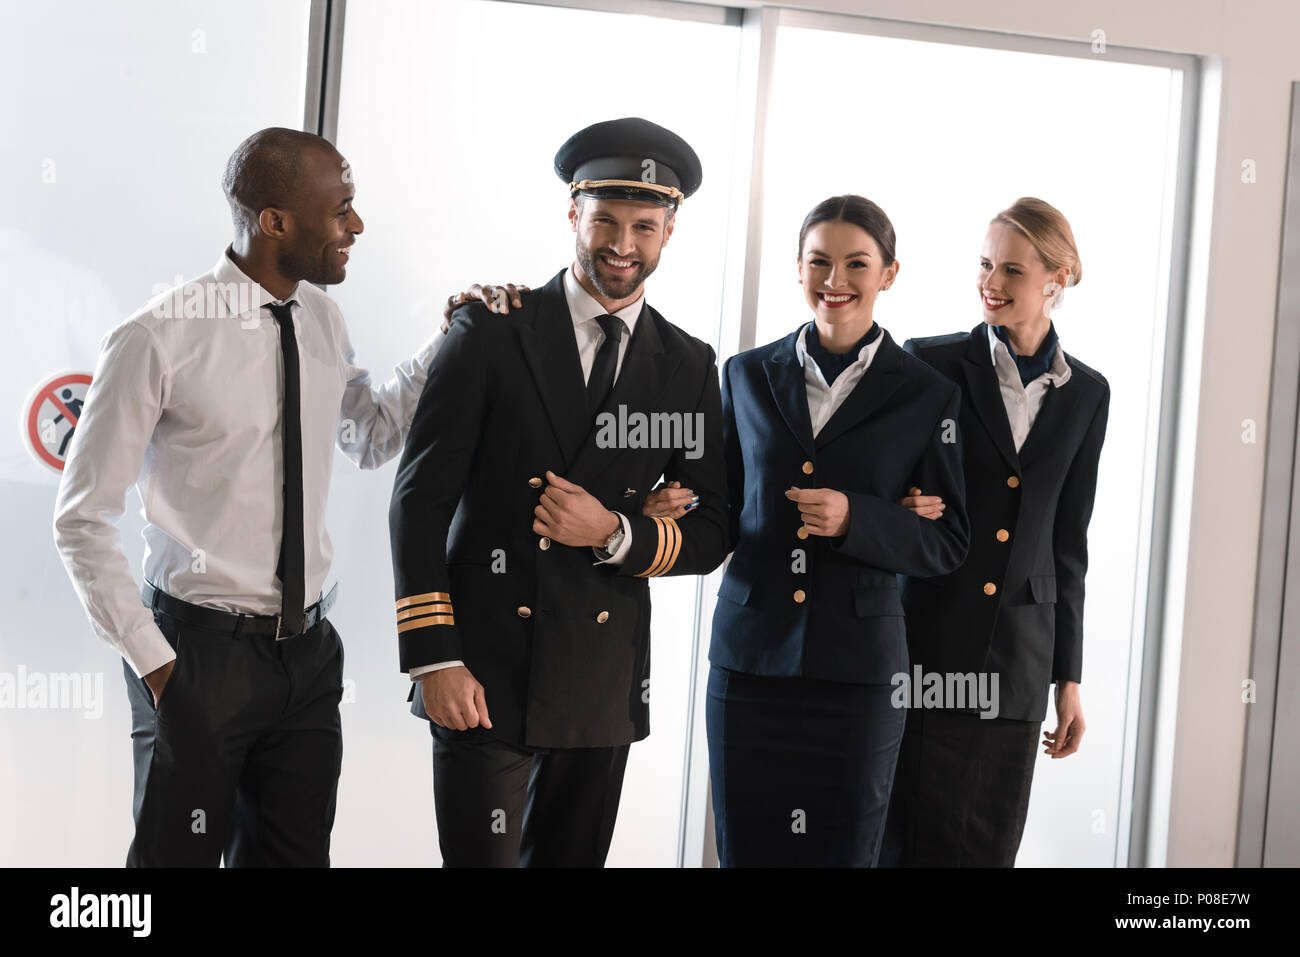 happy aviation personnel team in professional uniform - Stock Image